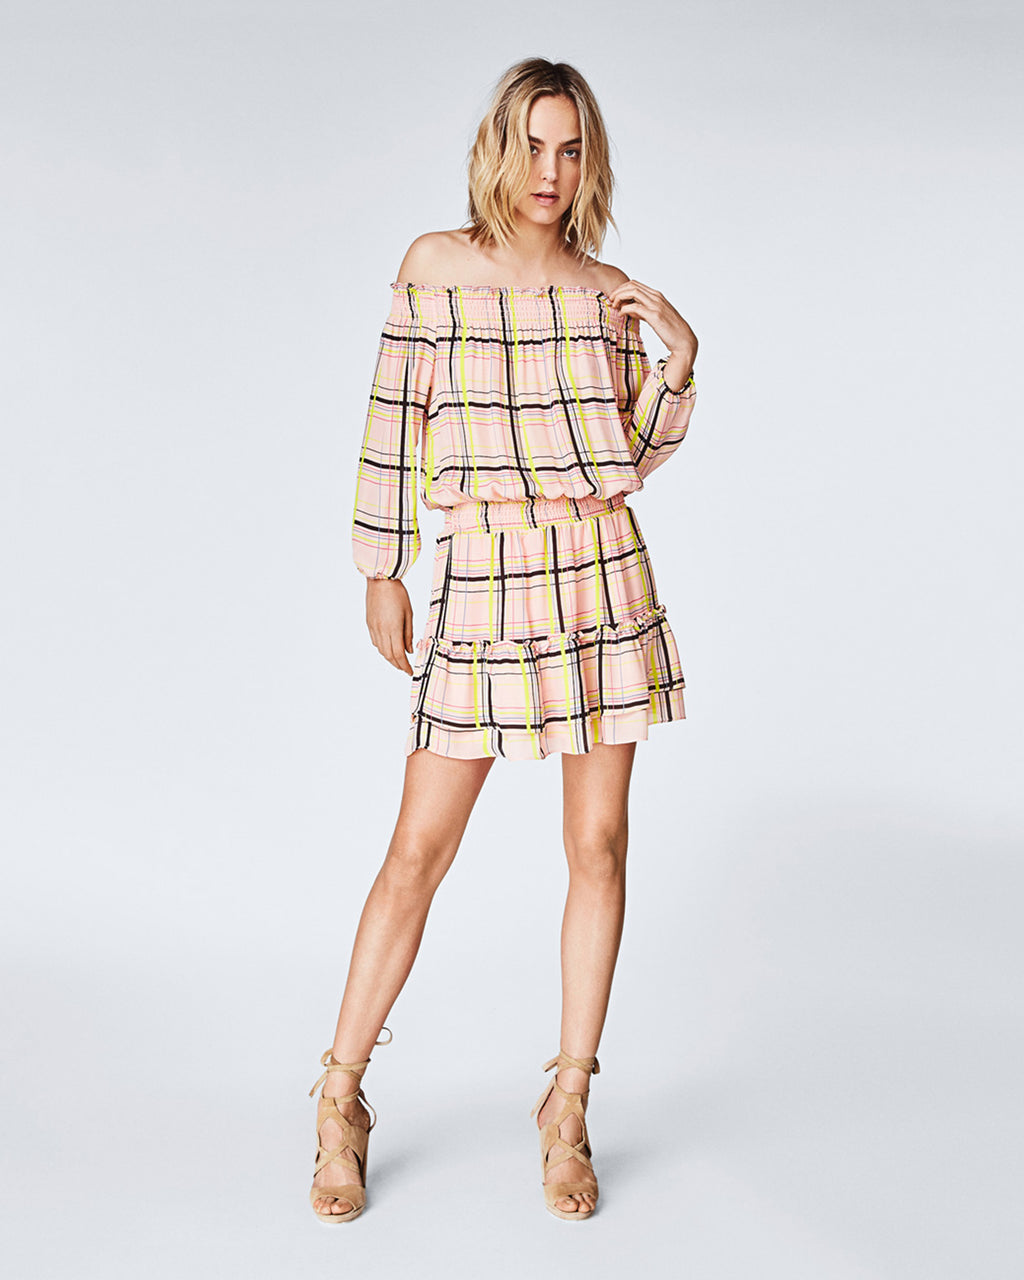 BO10143 - ELECTRIC PLAID SMOCKED DRESS - dresses - short - A little flounce for your step. This light silk, off-the-shoulder dress features a smocked silhouette and ruffled hem. The vibrance of the plaid print adds a little more pizzazz. Final Sale